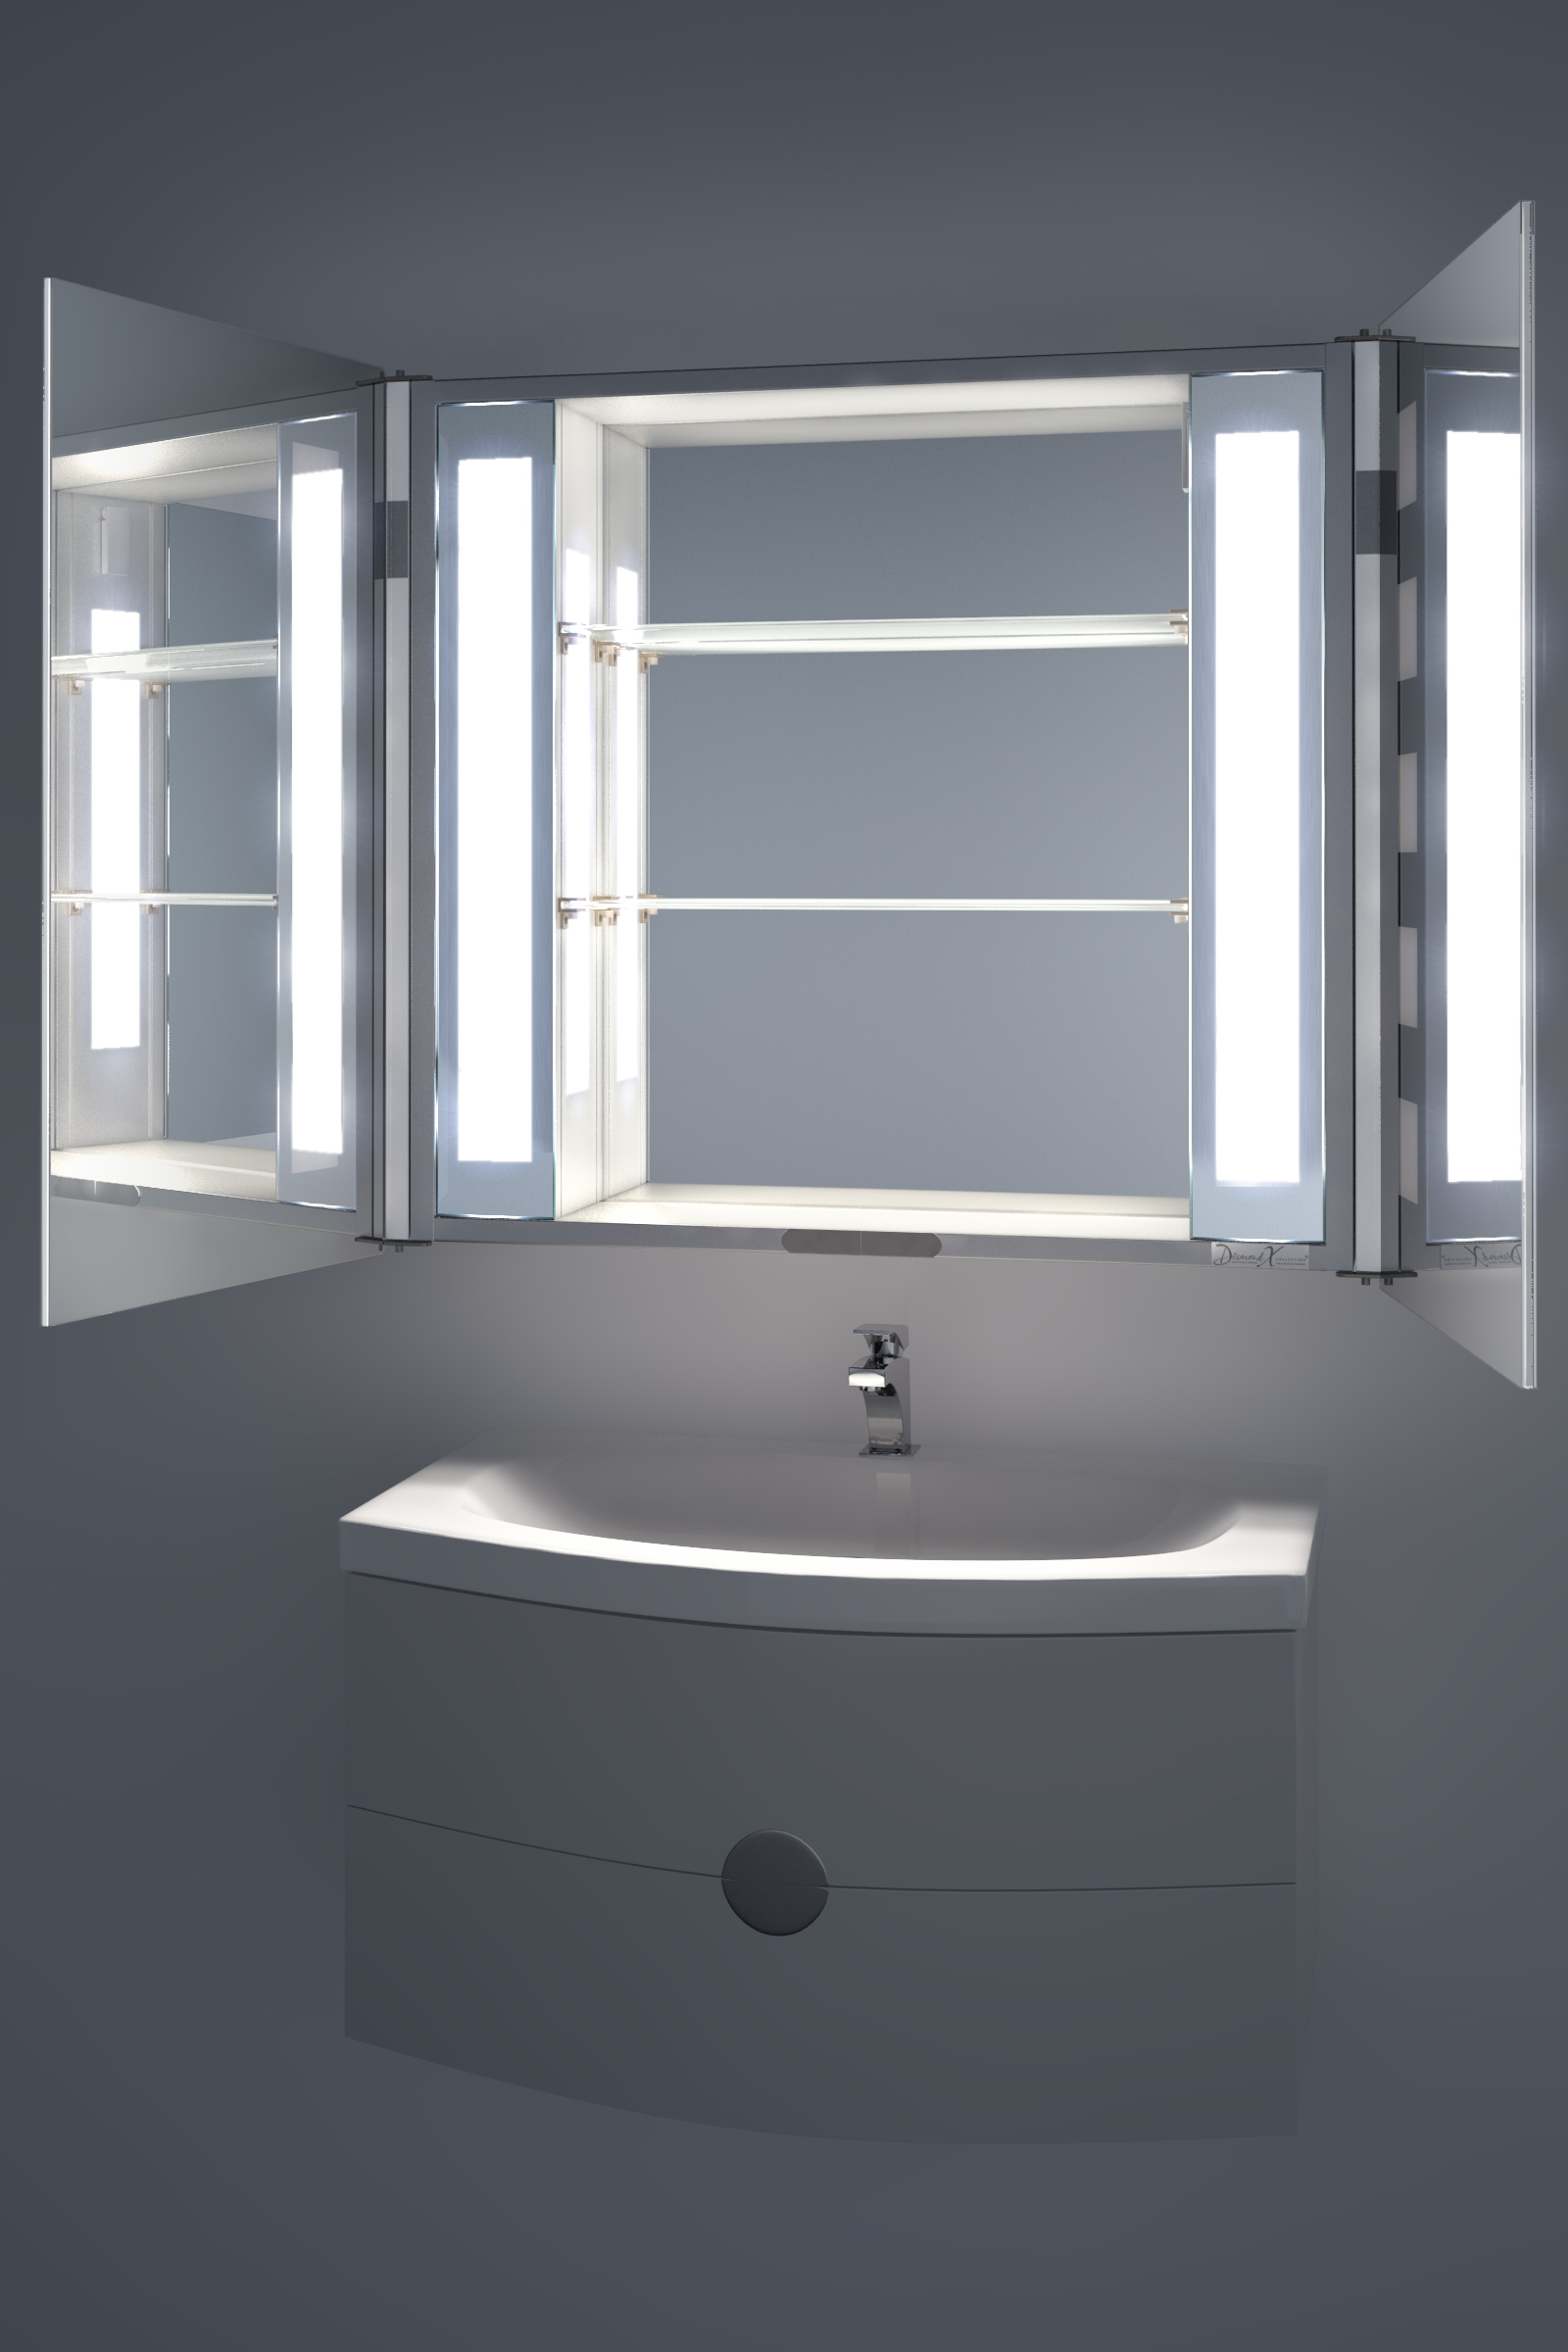 Bathroom Cabinets With Shaver Socket ambient demist bathroom cabinet with sensor & internal shaver